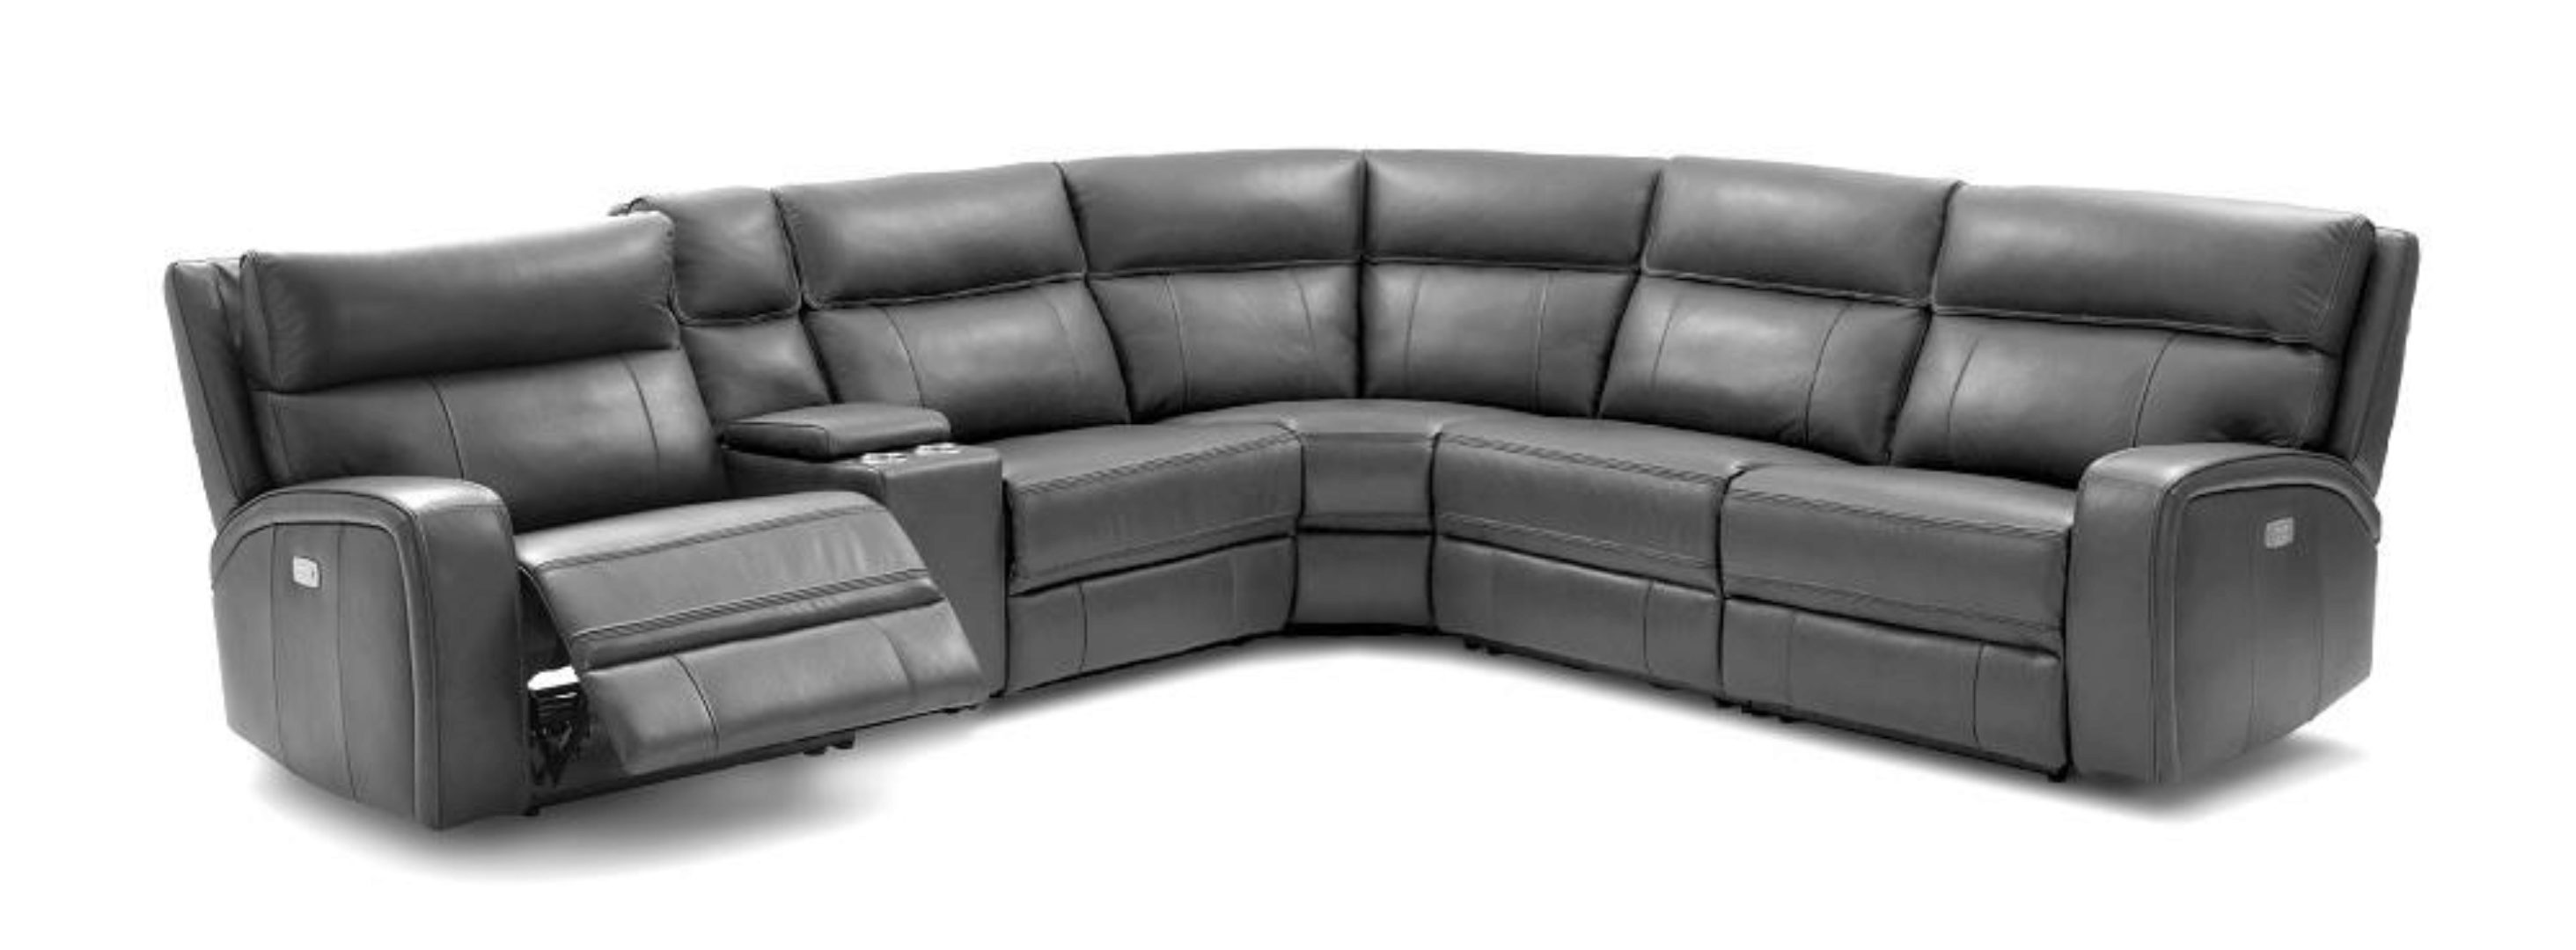 j m cozy modern dark grey premium italian leather 6 pcs motion sectional